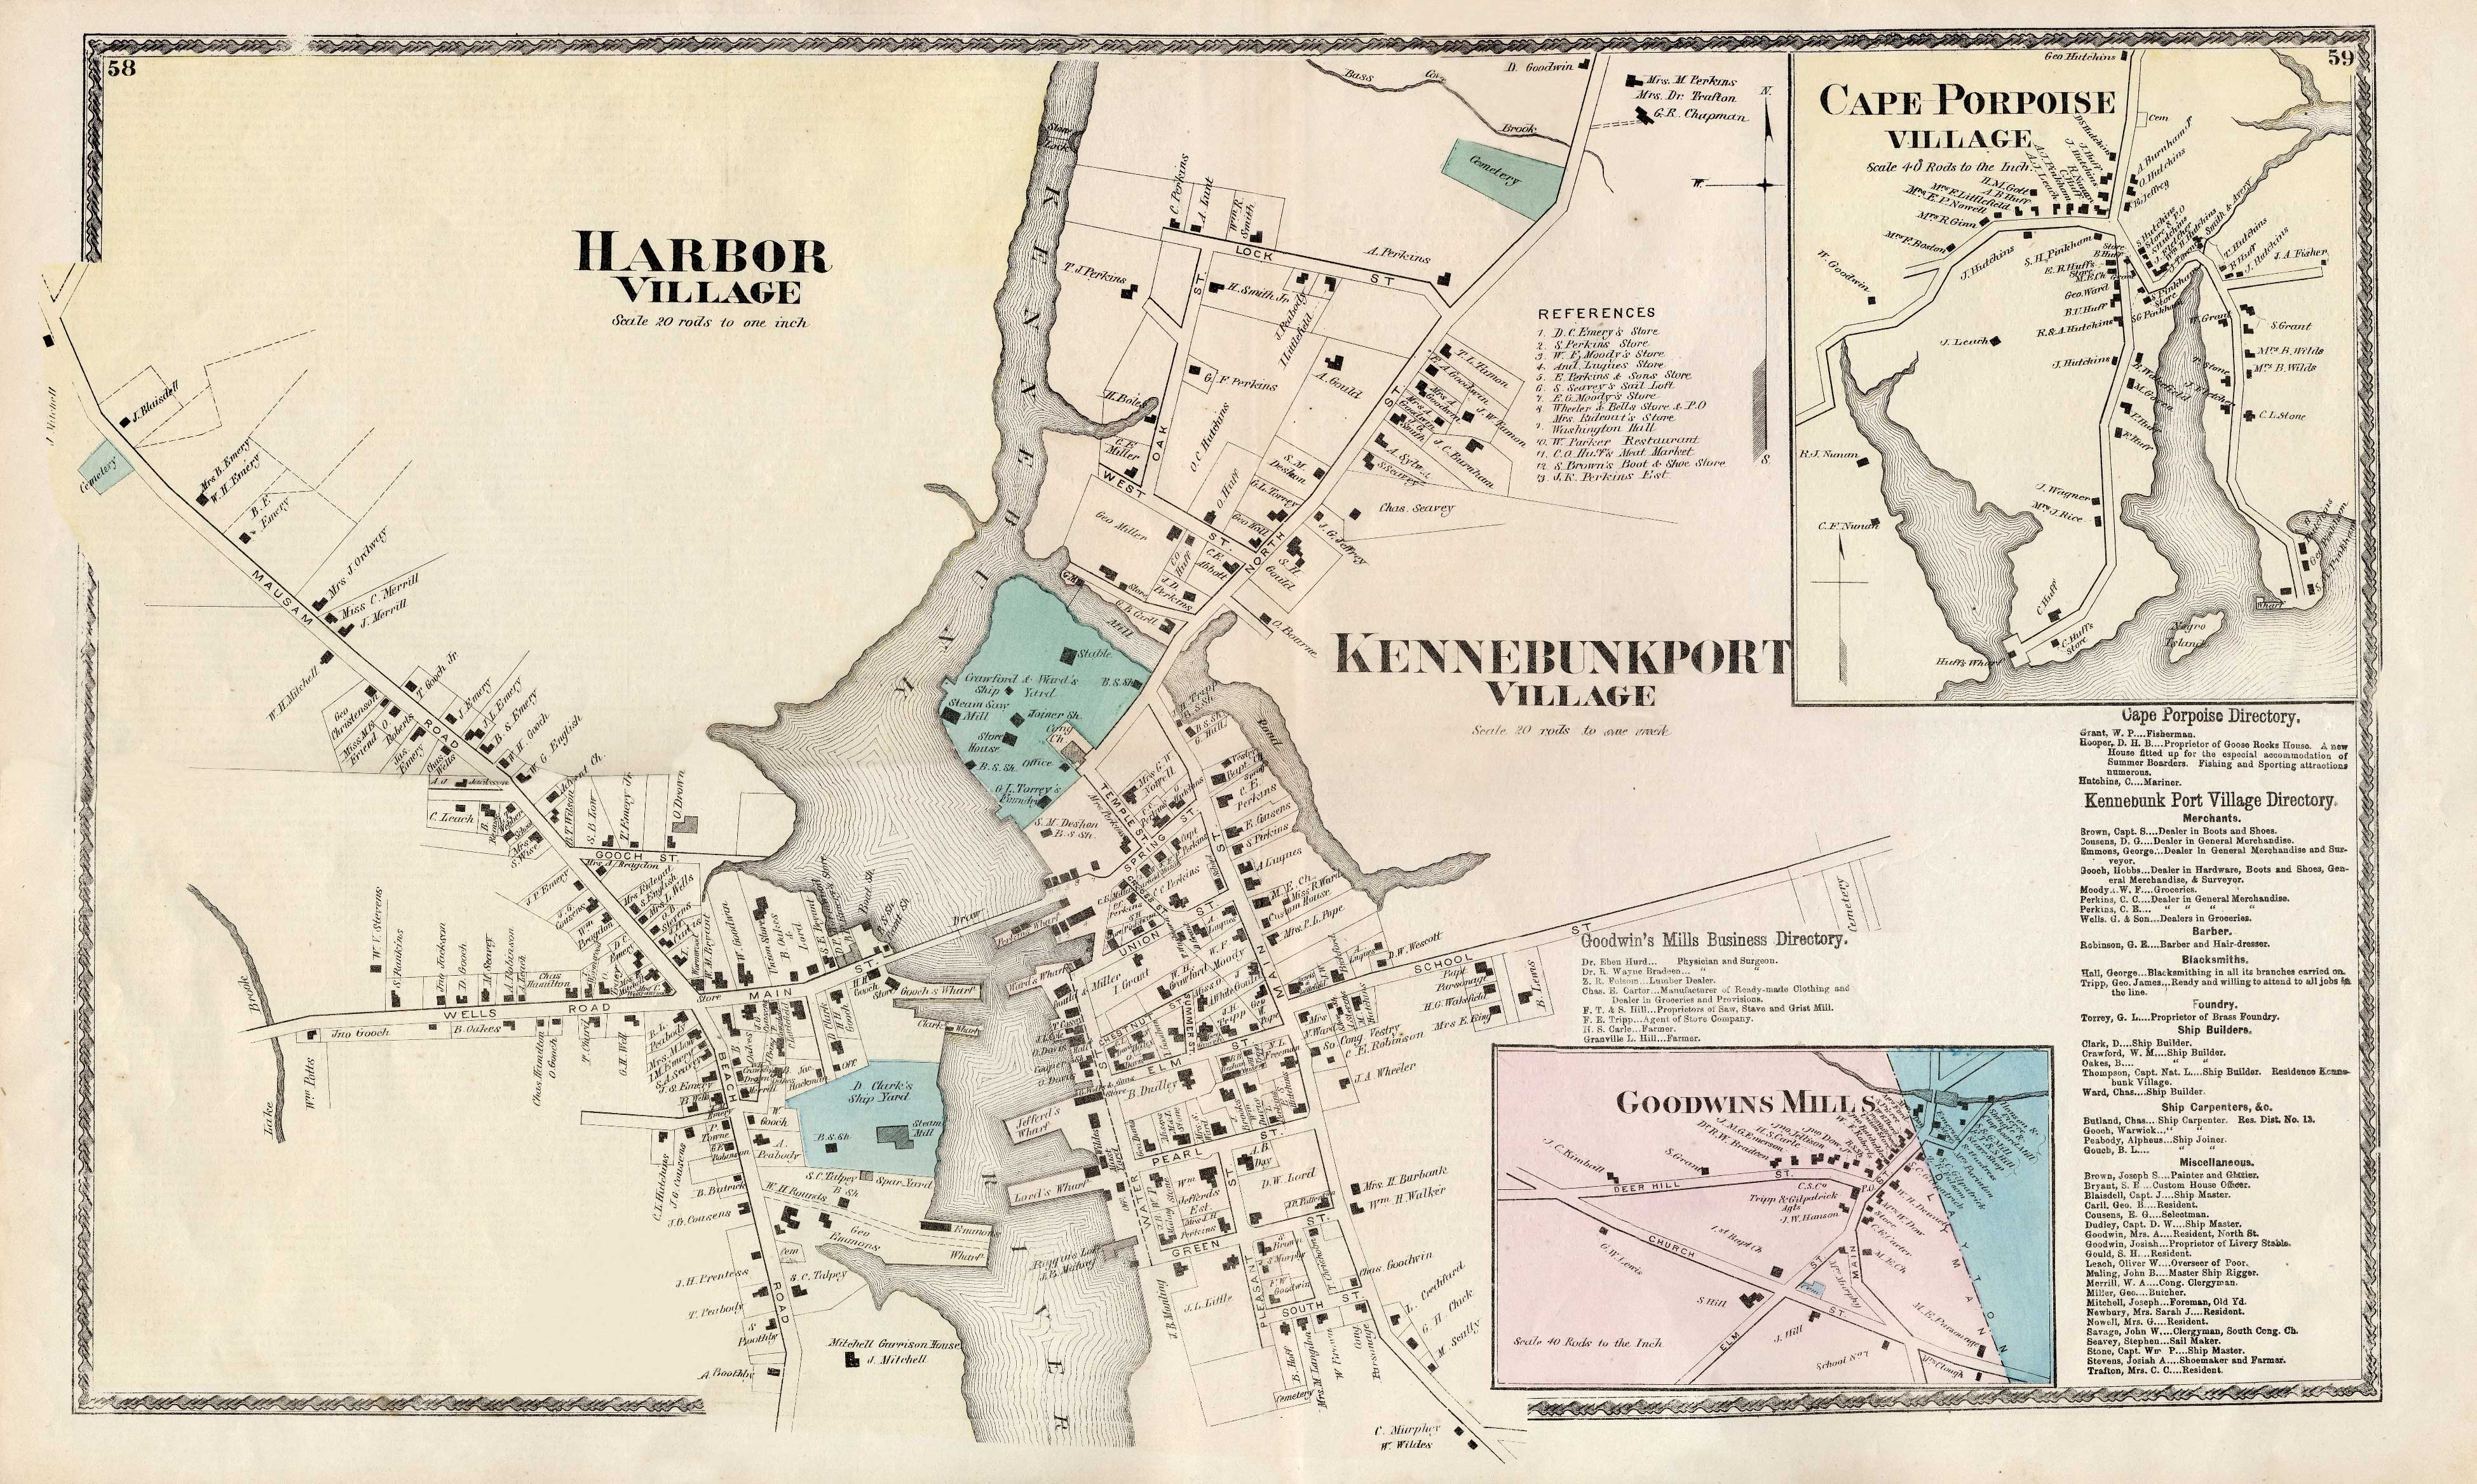 1872 atlas map of Kennebunkport Village, Lower Village, Cape Po on new gloucester me map, union me map, thomaston me map, south berwick me map, fryeburg me map, cornville me map, houlton me map, lubec me map, phippsburg me map, waterford me map, raymond me map, pemaquid me map, saco me map, livermore falls me map, vassalboro me map, skowhegan me map, waterboro me map, portsmouth me map, fort fairfield me map, oxford me map,